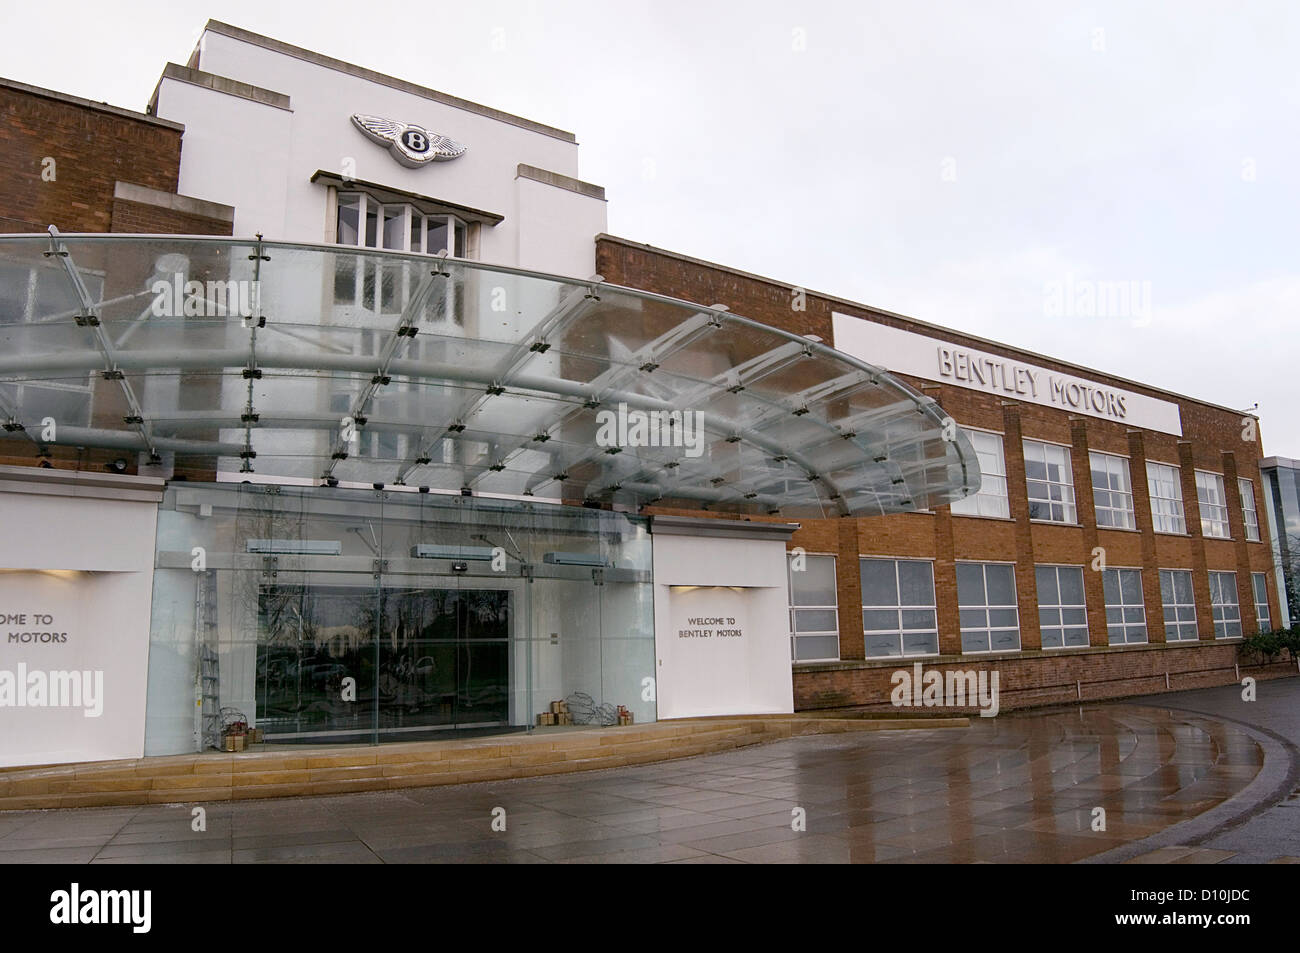 bentley car cars motors factory in crewe uk - Stock Image